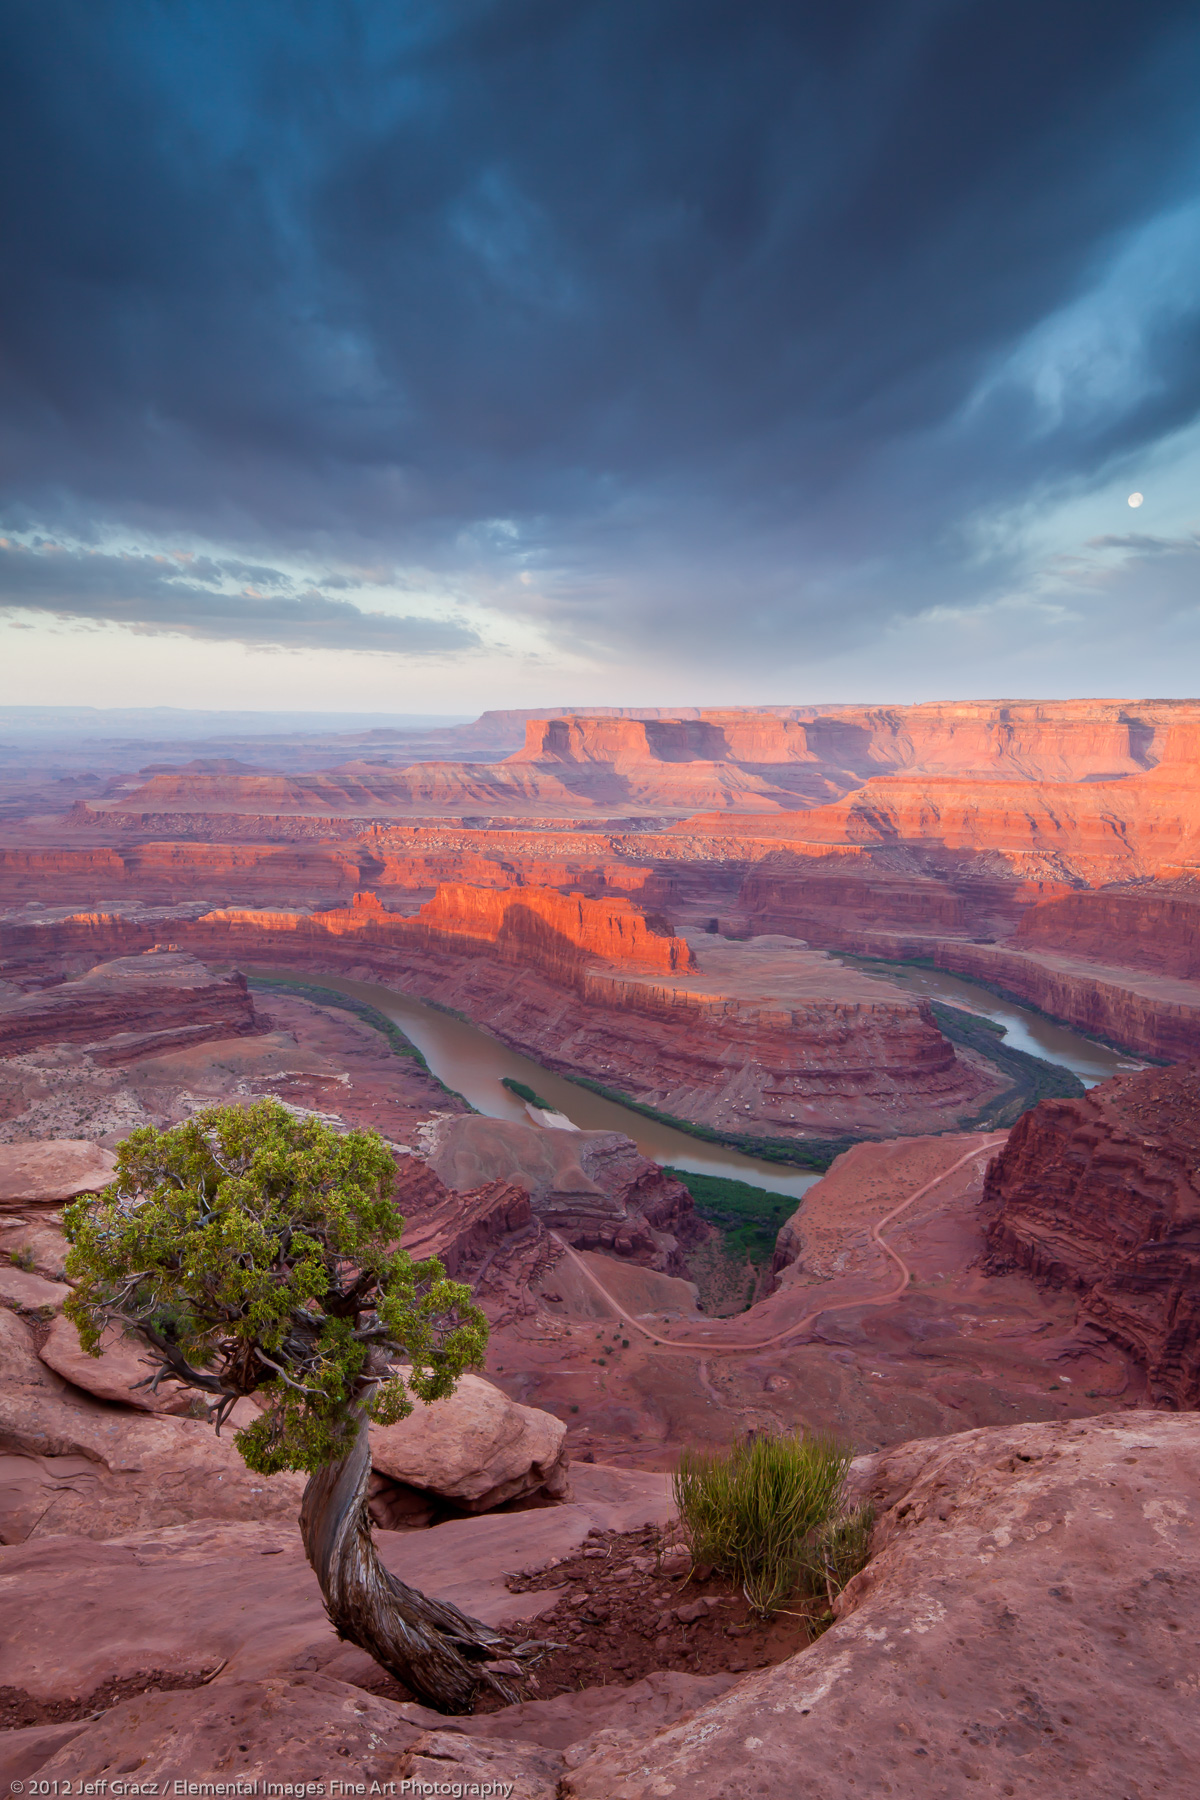 Canyon Sunrise | Dead Horse Point State Park | UT | USA - © © 2012 Jeff Gracz / Elemental Images Fine Art Photography - All Rights Reserved Worldwide